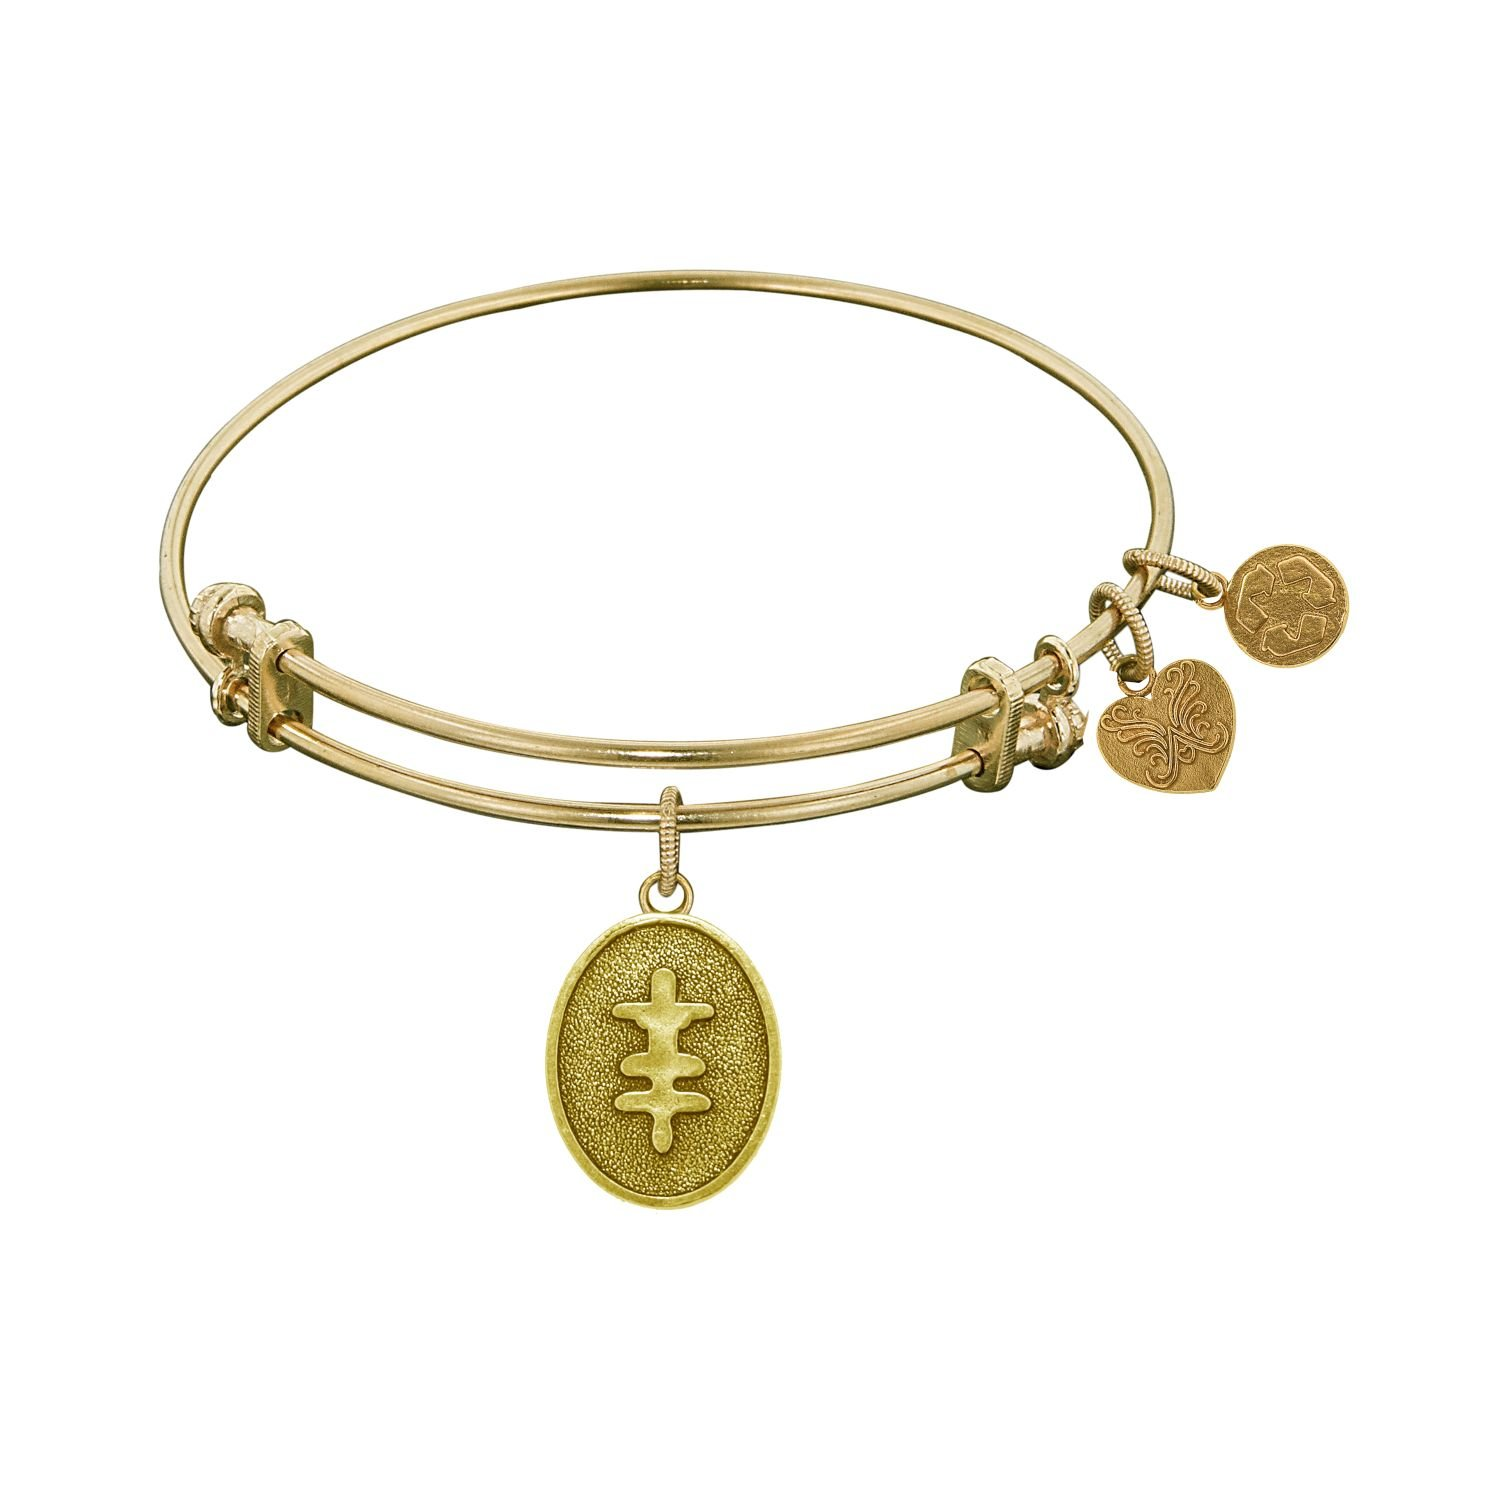 GEL1131 Adjustable Angelica Ladies Inspirational Collection Bangle Charm 7.25 Inches